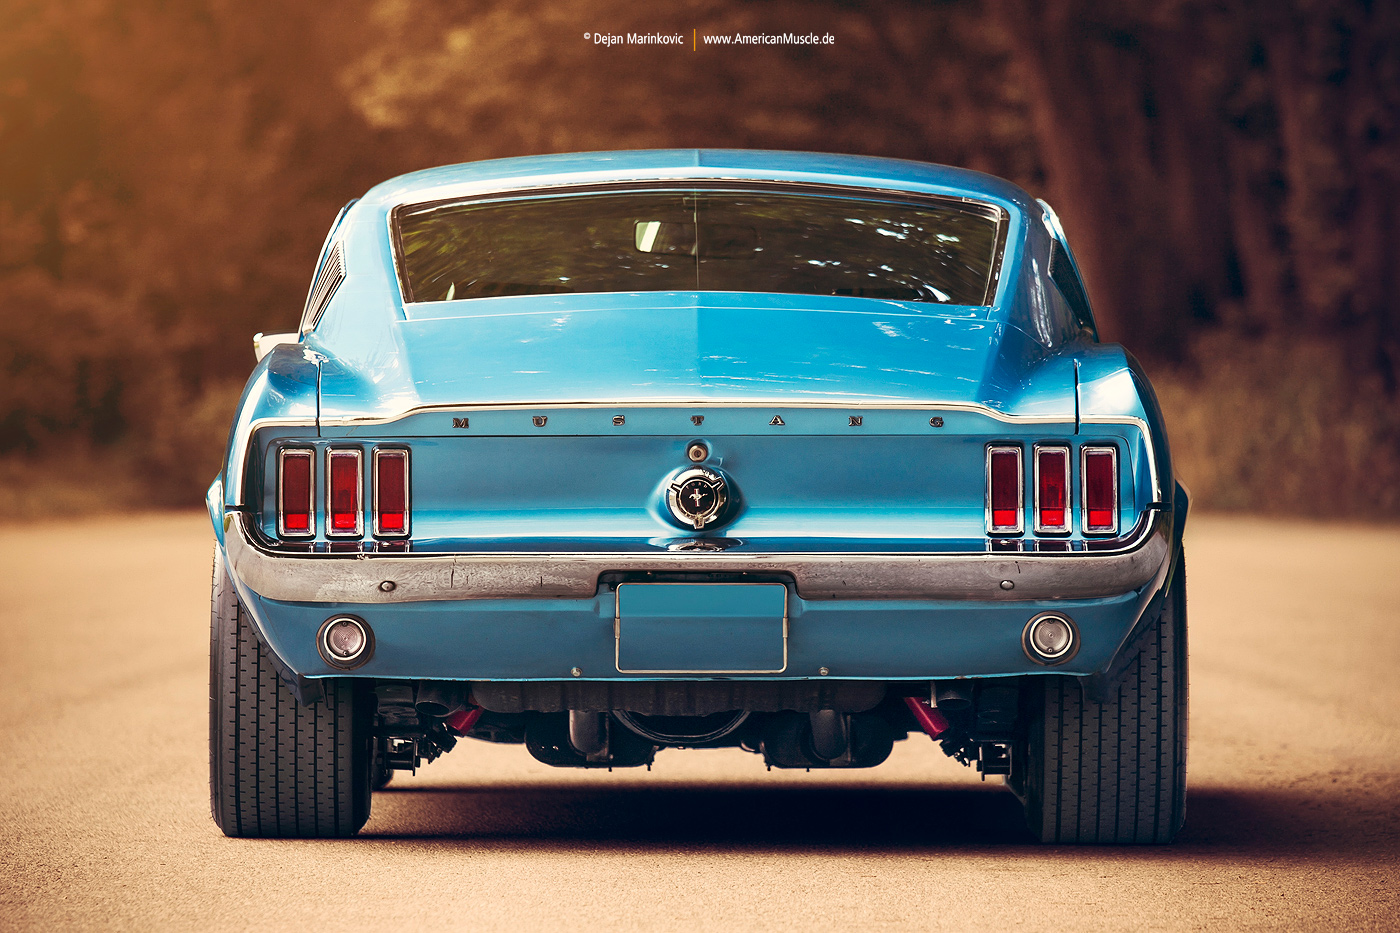 1967_ford_mustang_fastback_rear_by_americanmuscle-dacgtry-46058439f3f87e16e00e0114638a585cd9393ec2